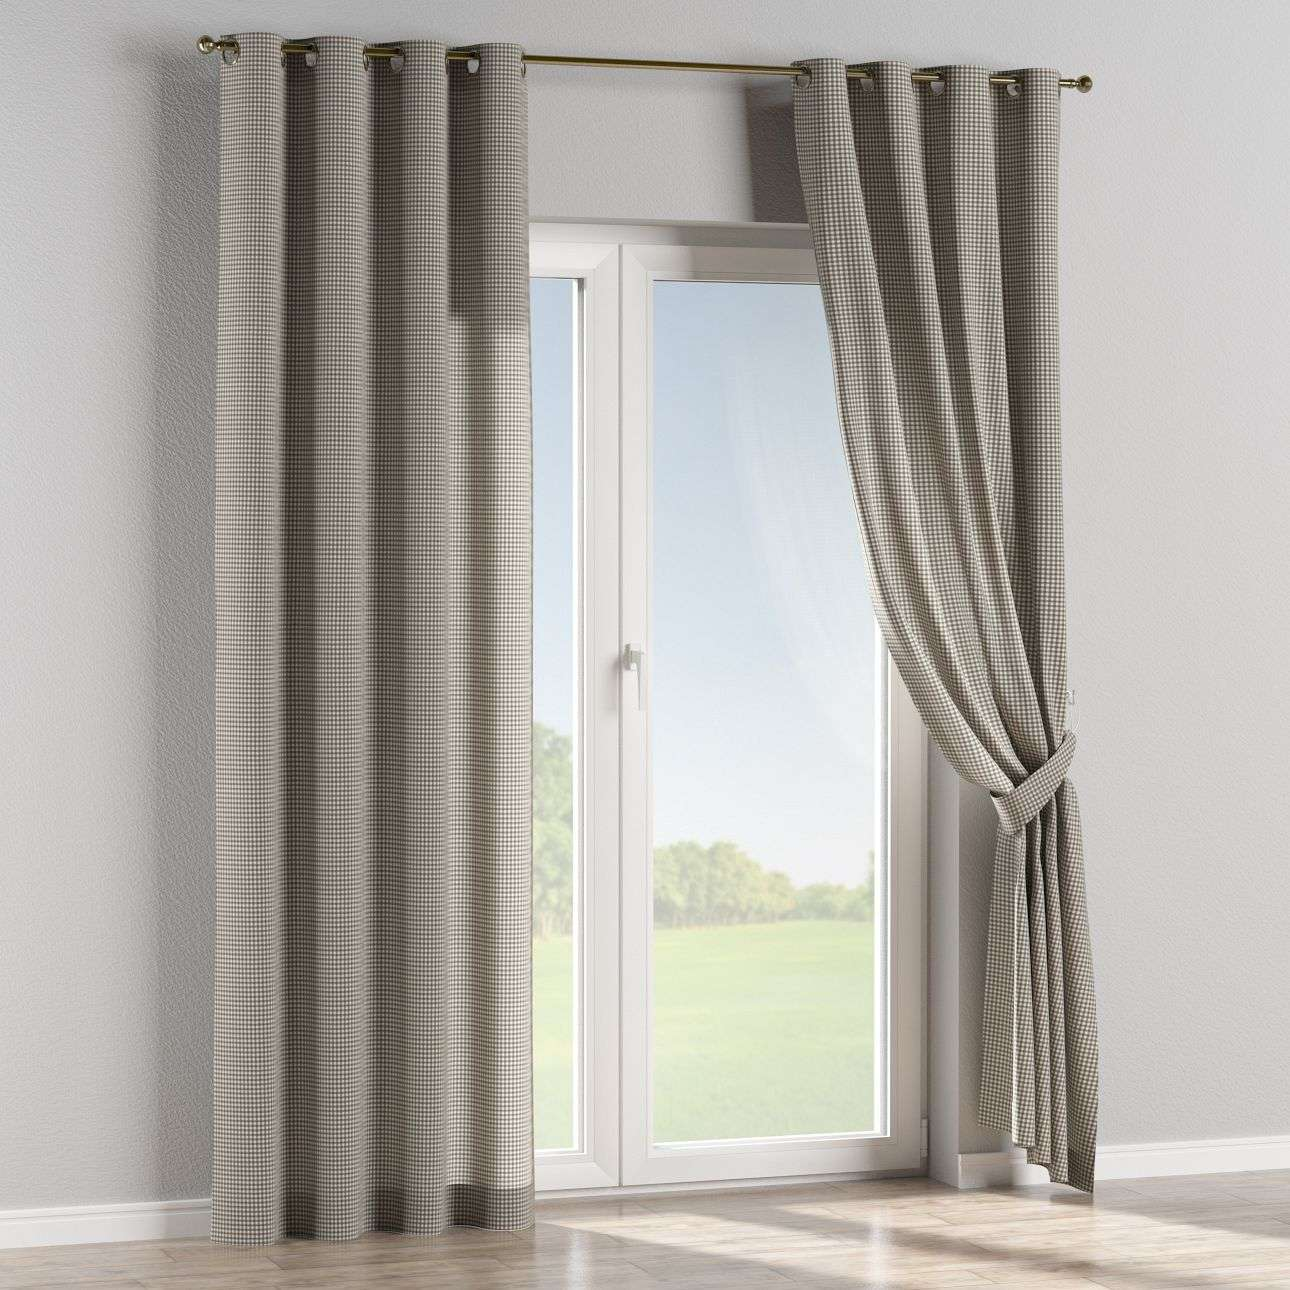 Eyelet curtains in collection Quadro, fabric: 136-10